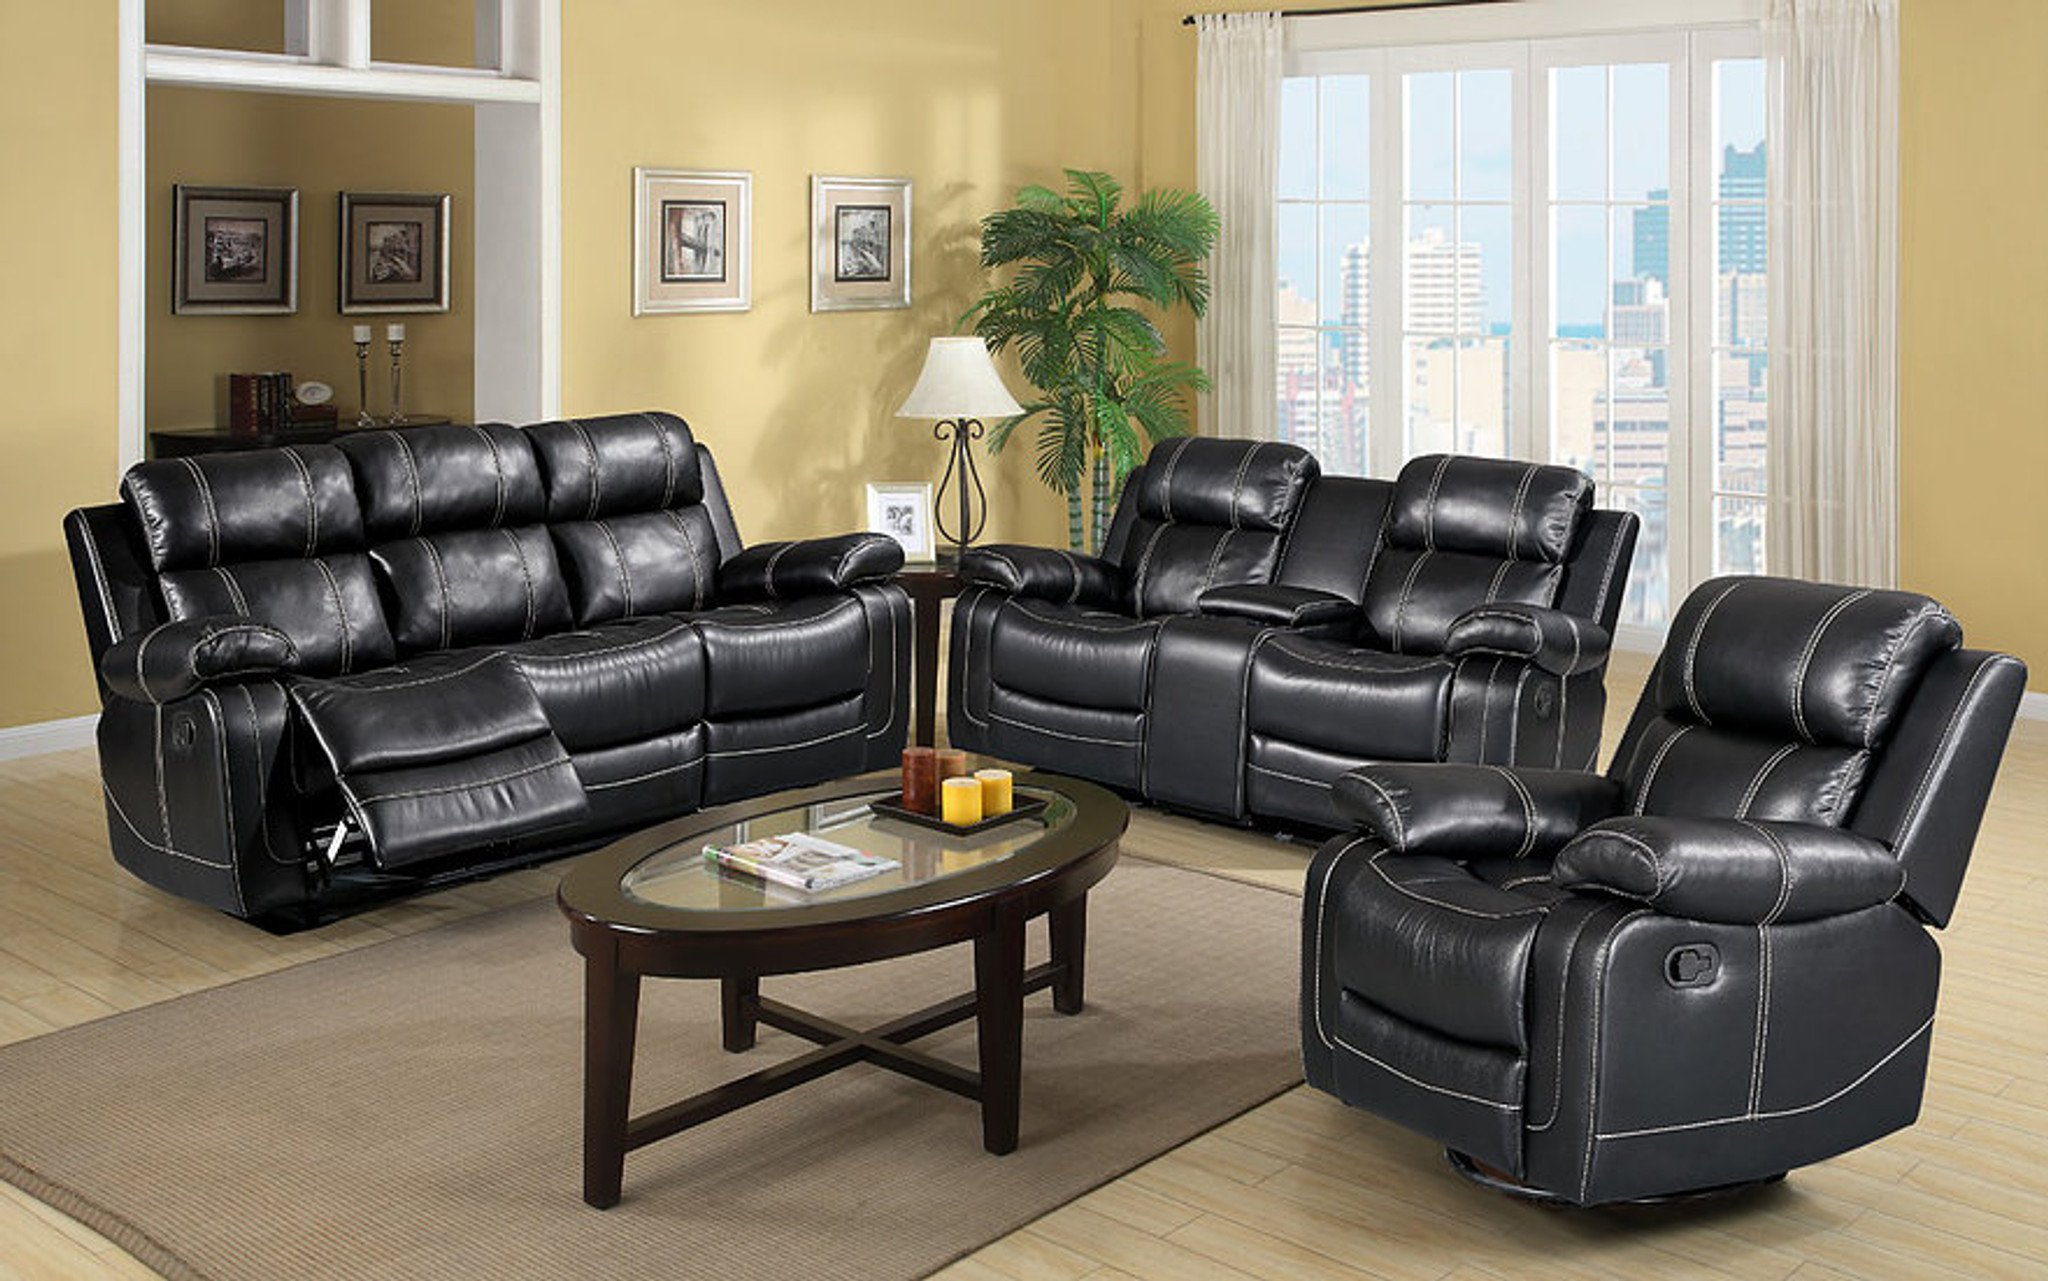 Picture of: S3008 2pcs Grace Black Reclining Sofa And Loveseat Set Collection By New Era